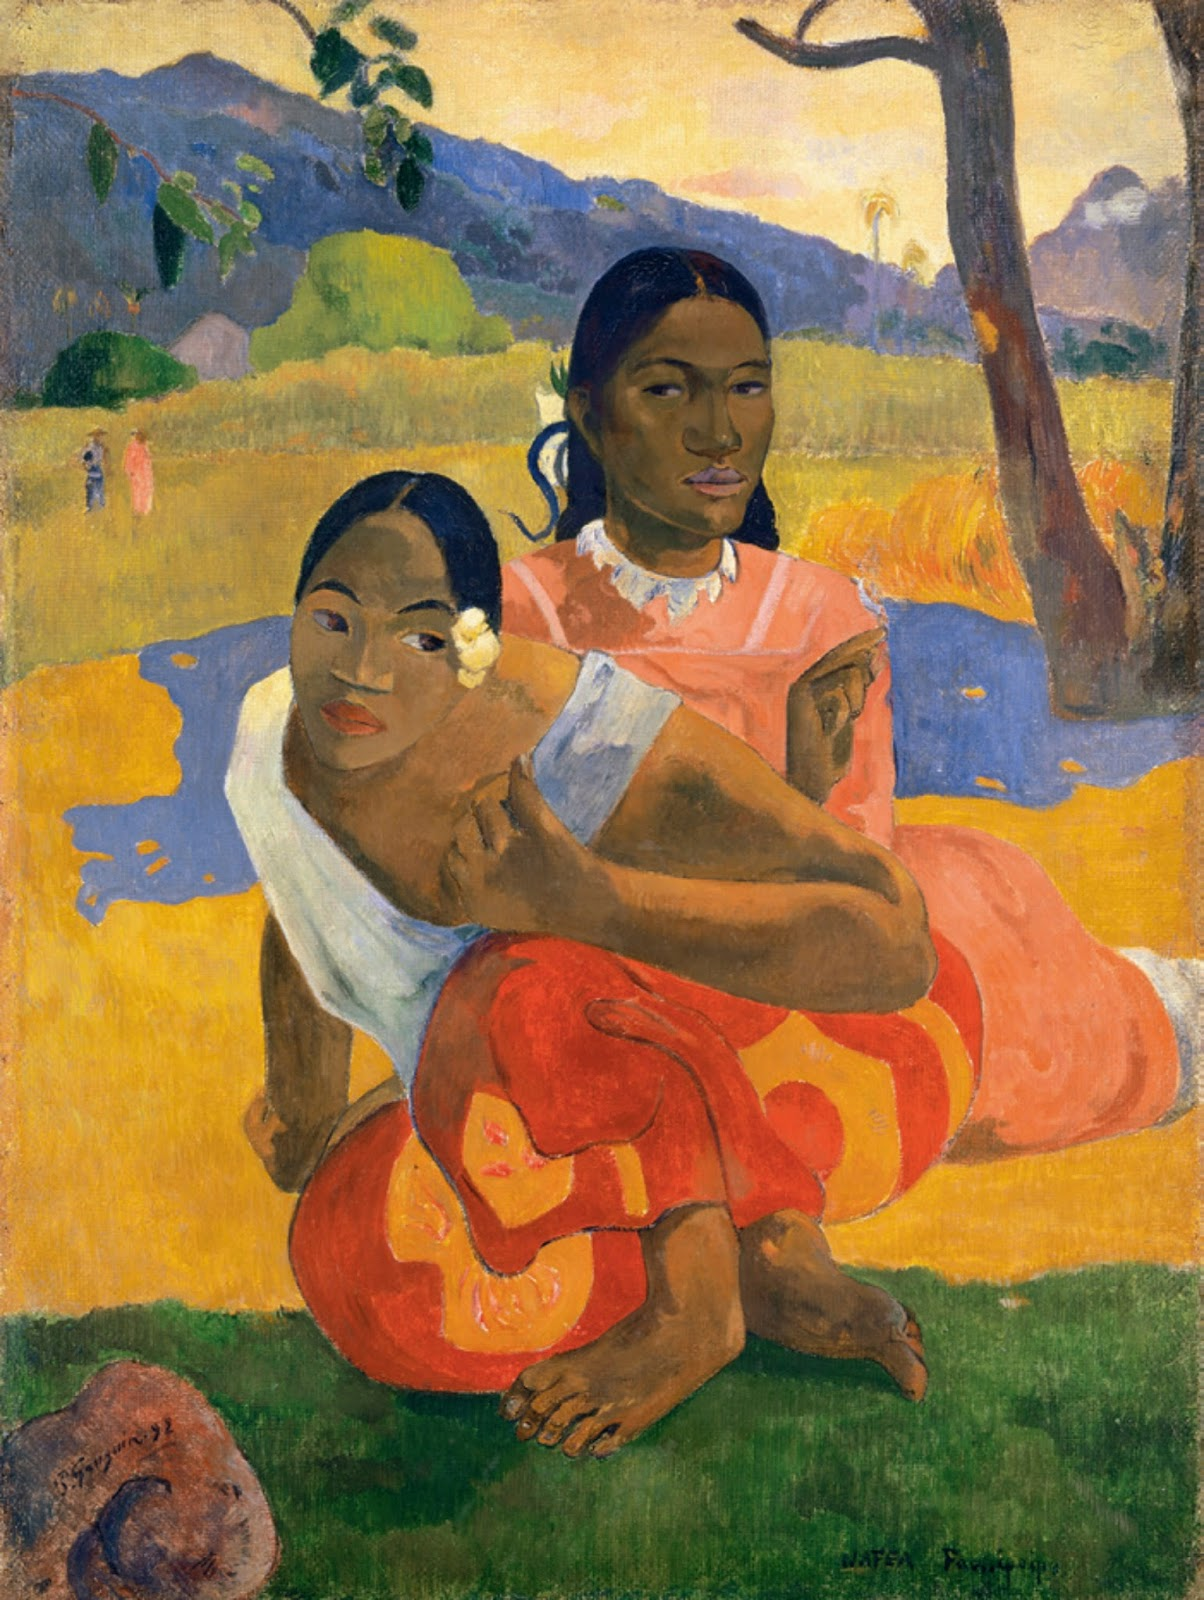 Paul_Gauguin,_Nafea_Faa_Ipoipo-_(When_Will_You_Marry-)_1892,_oil_on_canvas,_101_x_77_cm (1)